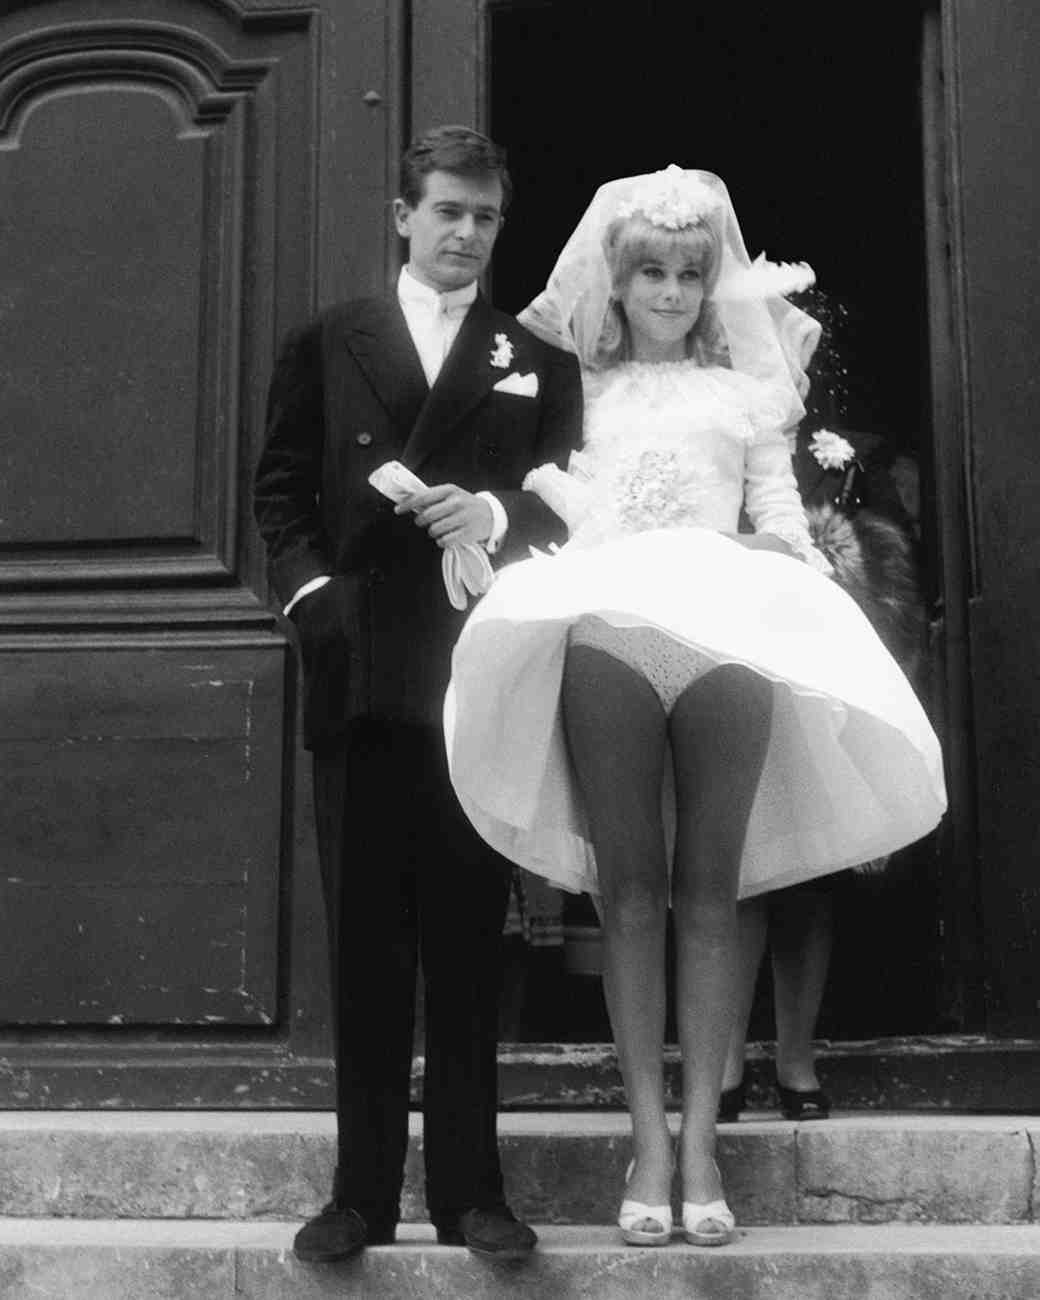 movie-wedding-dresses-vice-and-virtue-catherine-deneuve-0316.jpg